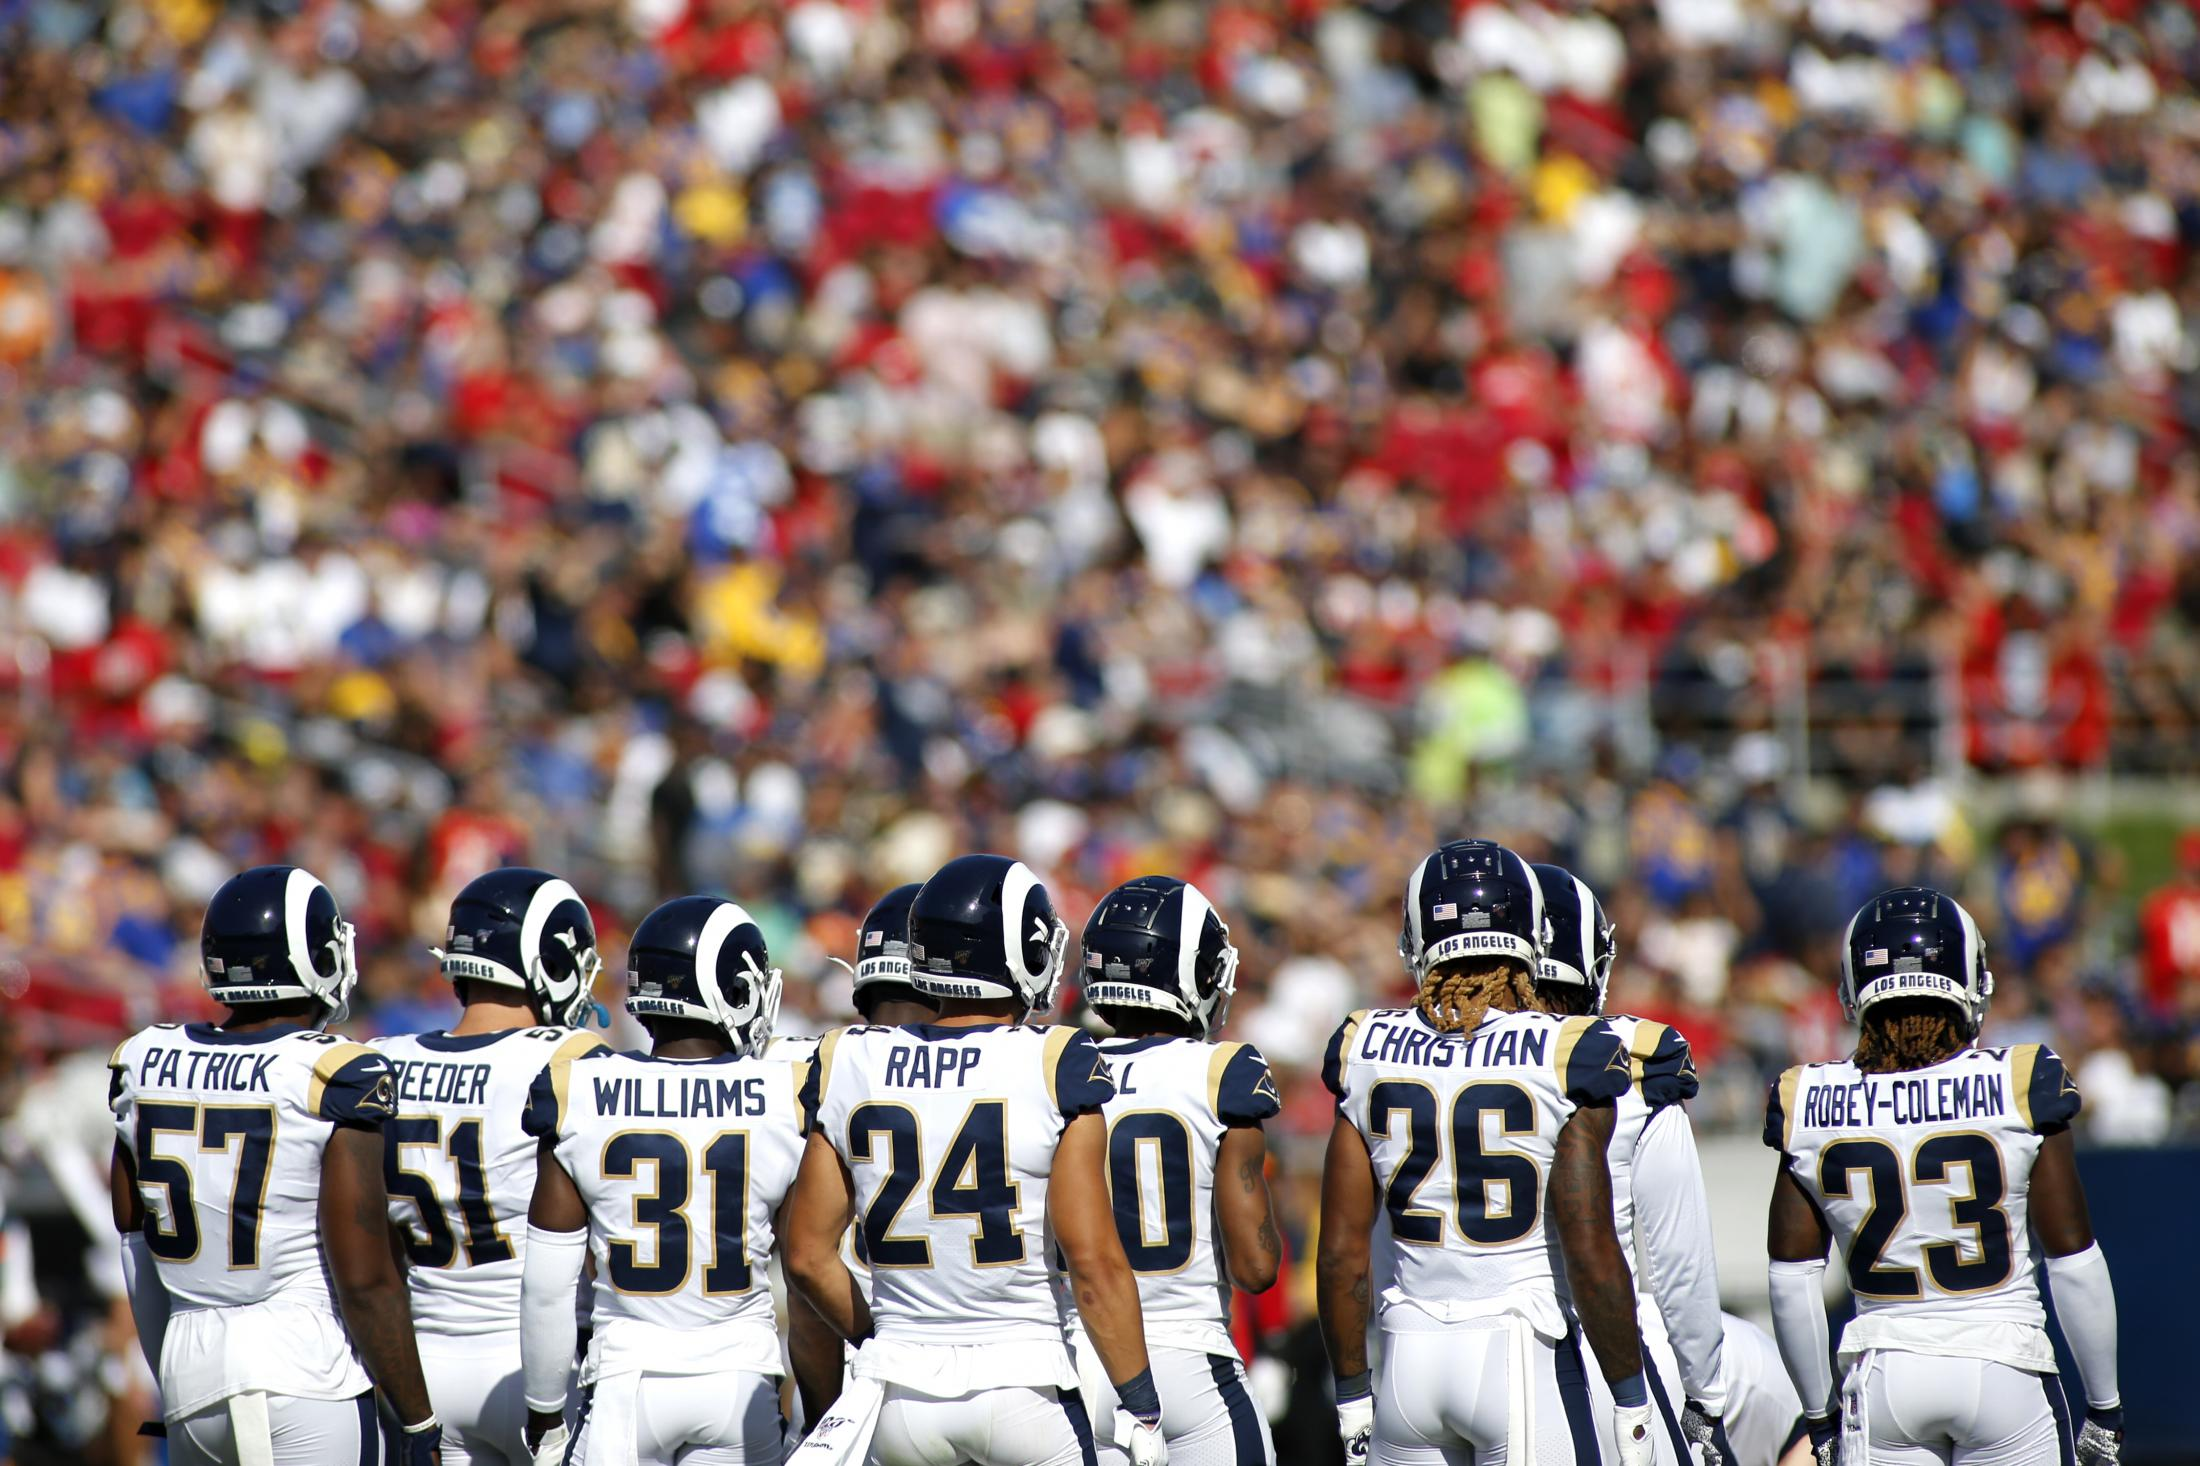 LOS ANGELES, CALIFORNIA - SEPTEMBER 29: The Los Angeles Rams standby during the fourth quarter against the Tampa Bay Buccaneers at Los Angeles Memorial Coliseum on September 29, 2019 in Los Angeles, California. (Photo by Katharine Lotze/Getty Images)